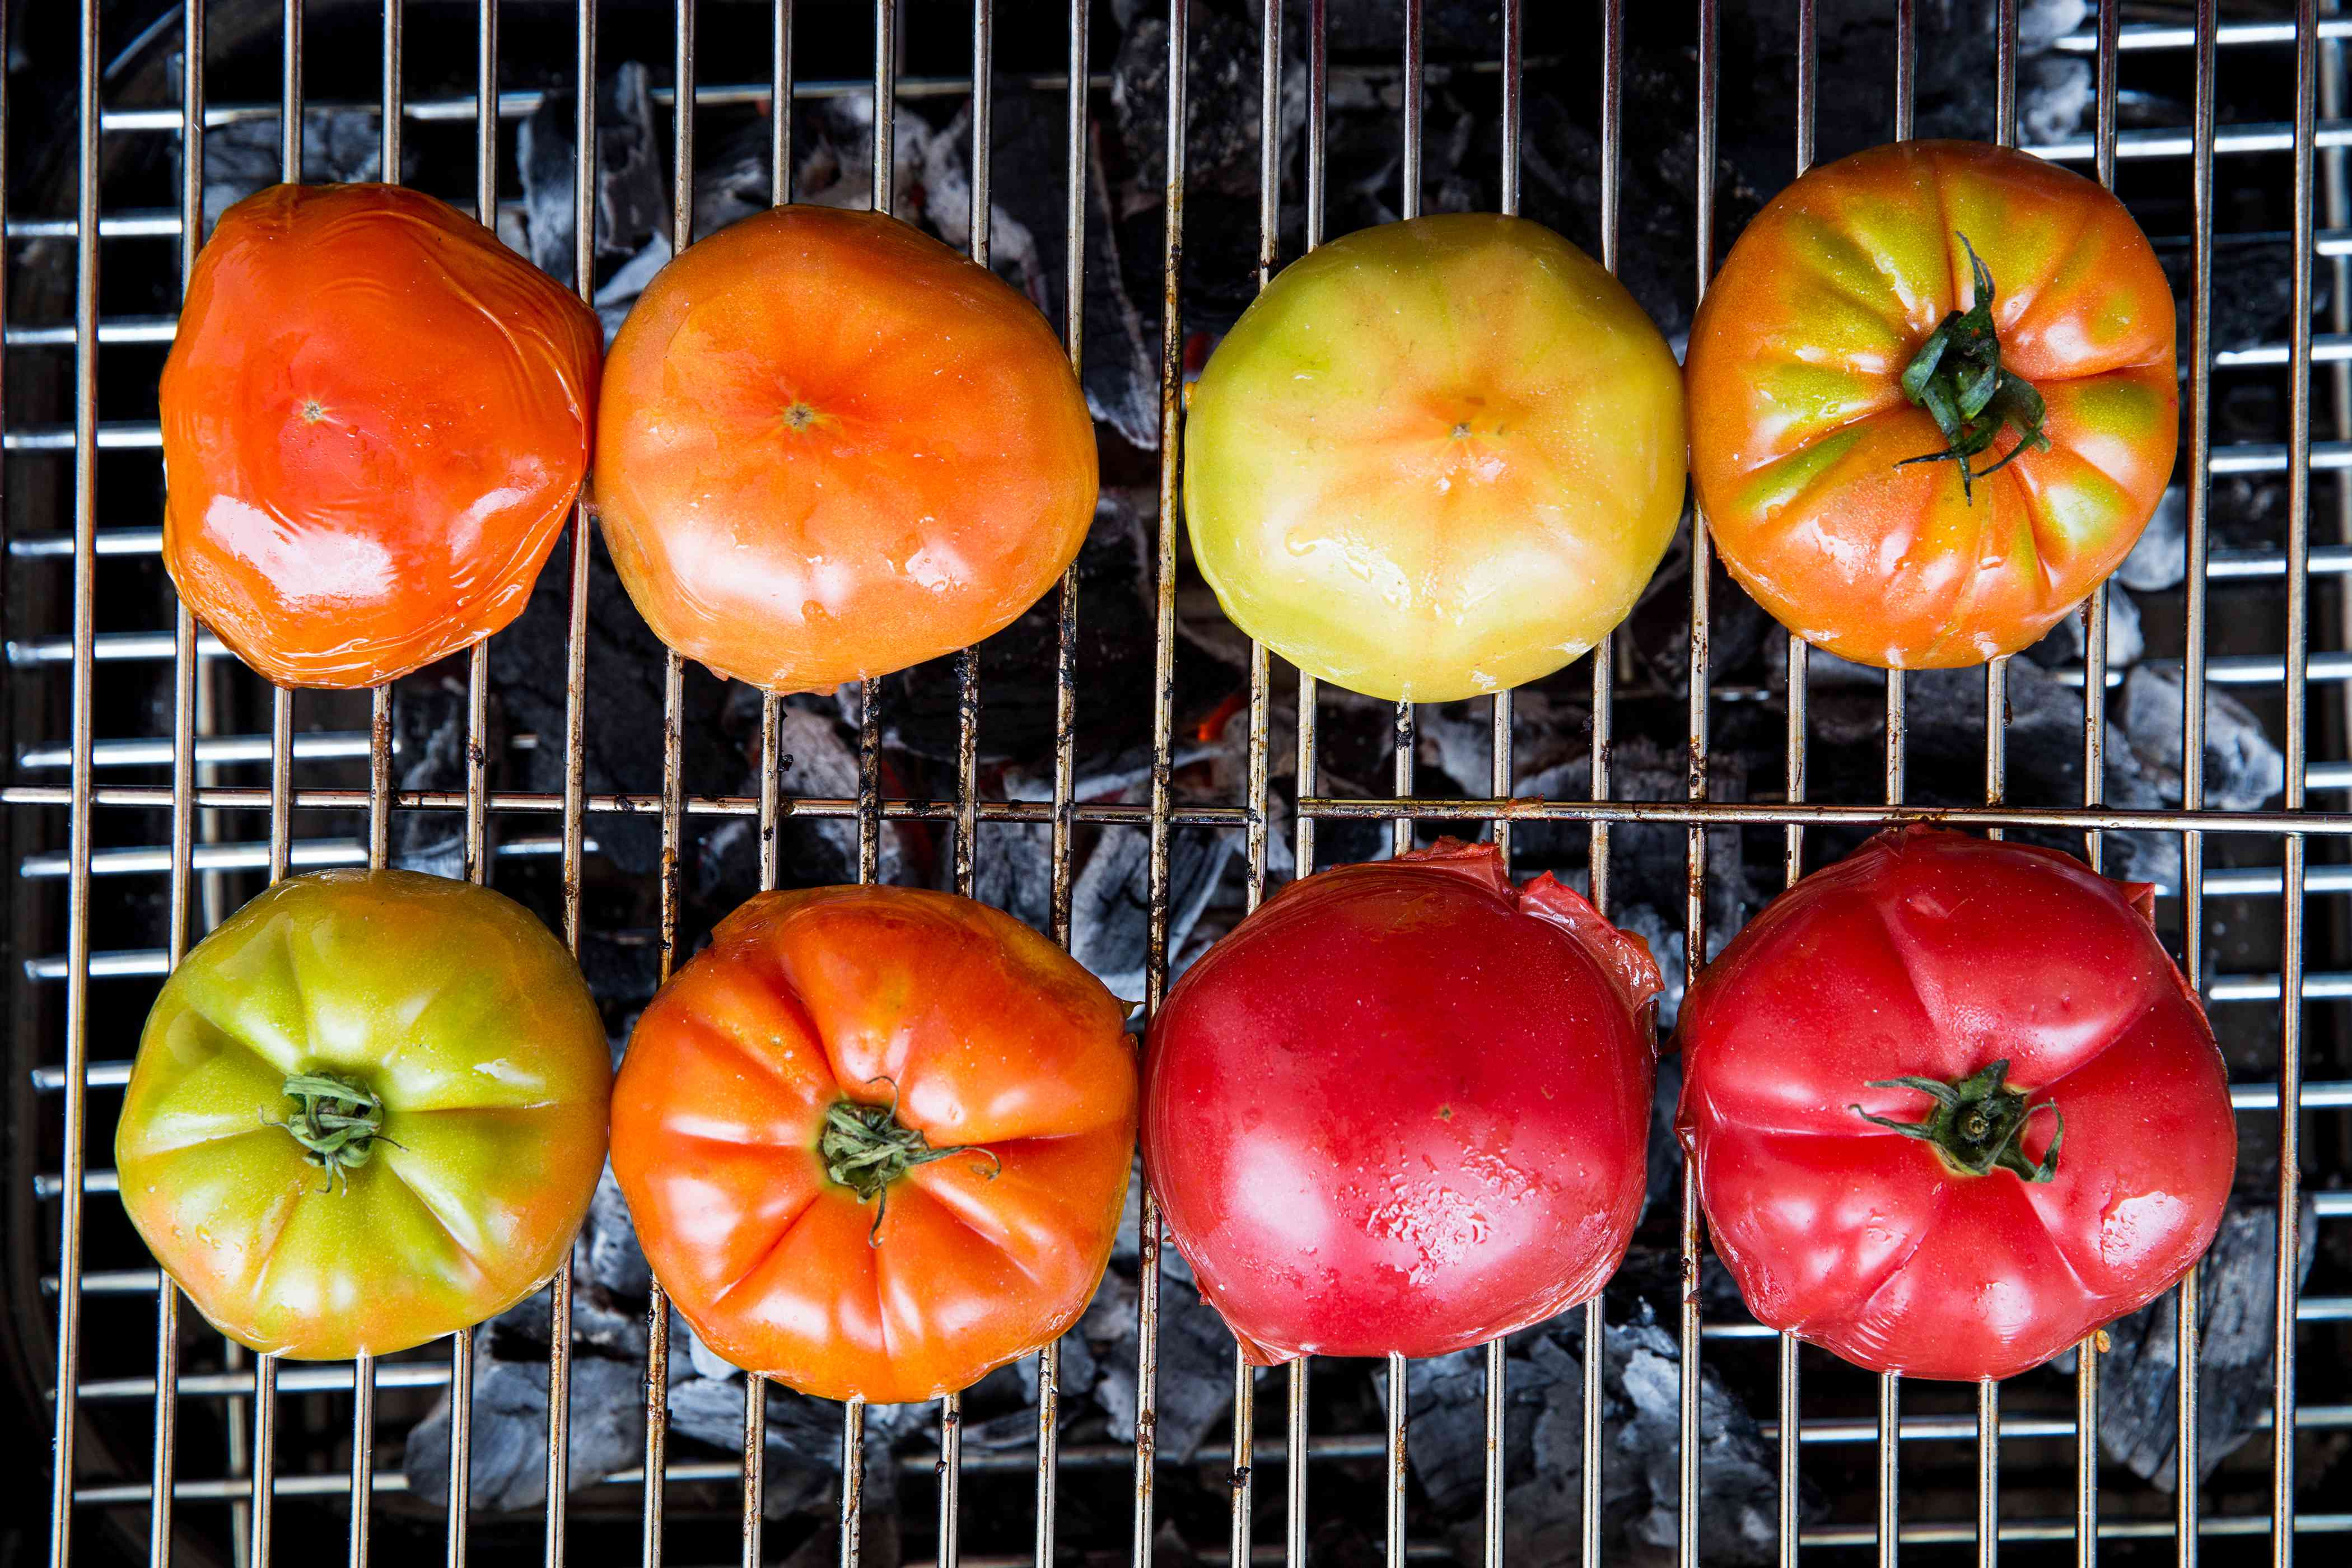 Tomatoes on the grill